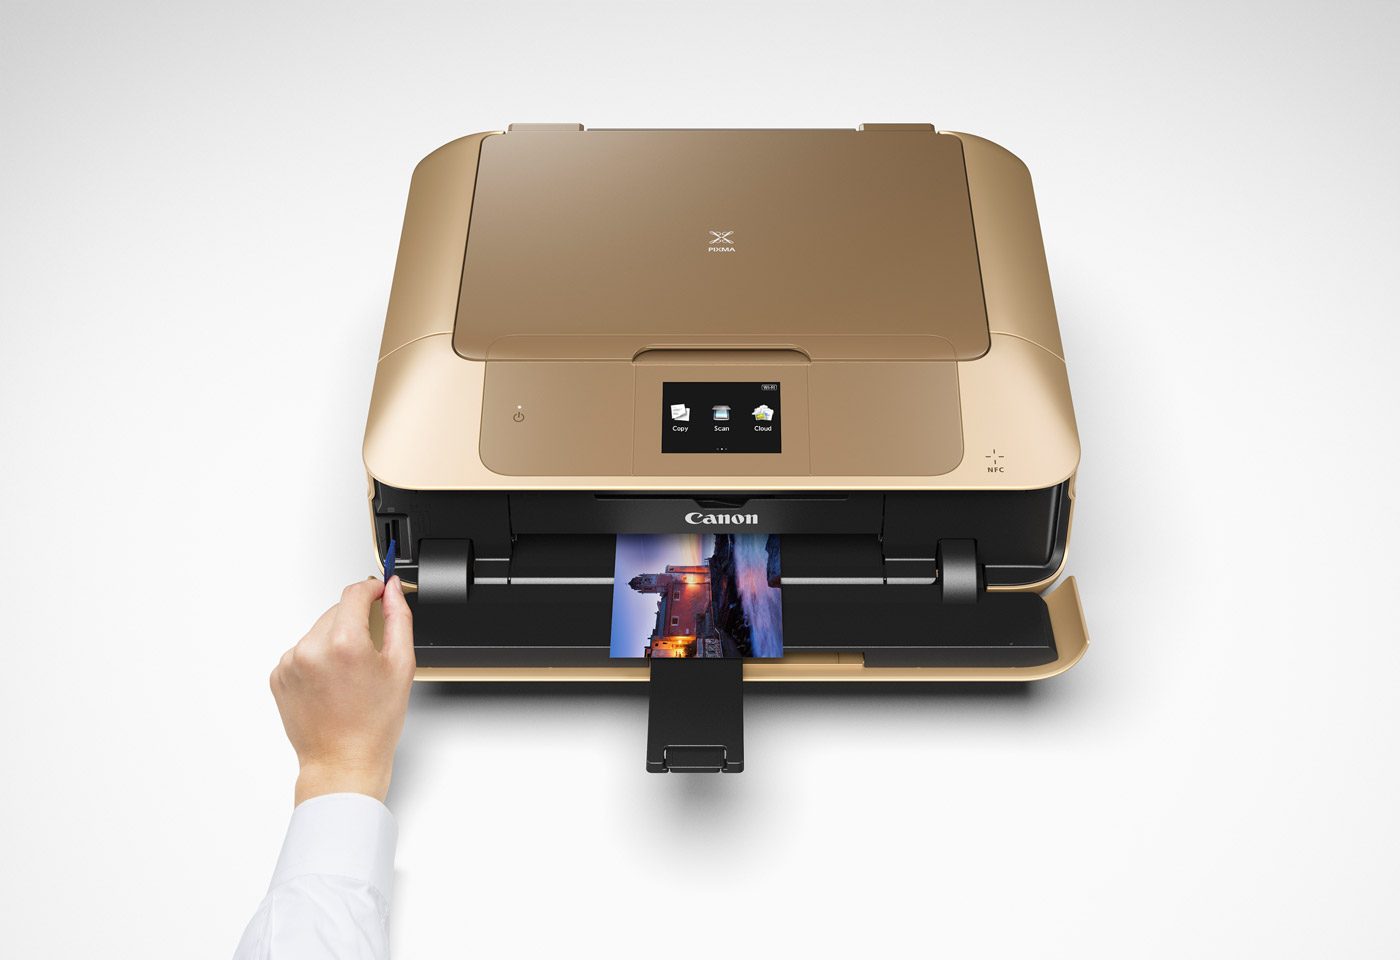 gold printer with hand putting in an SD card